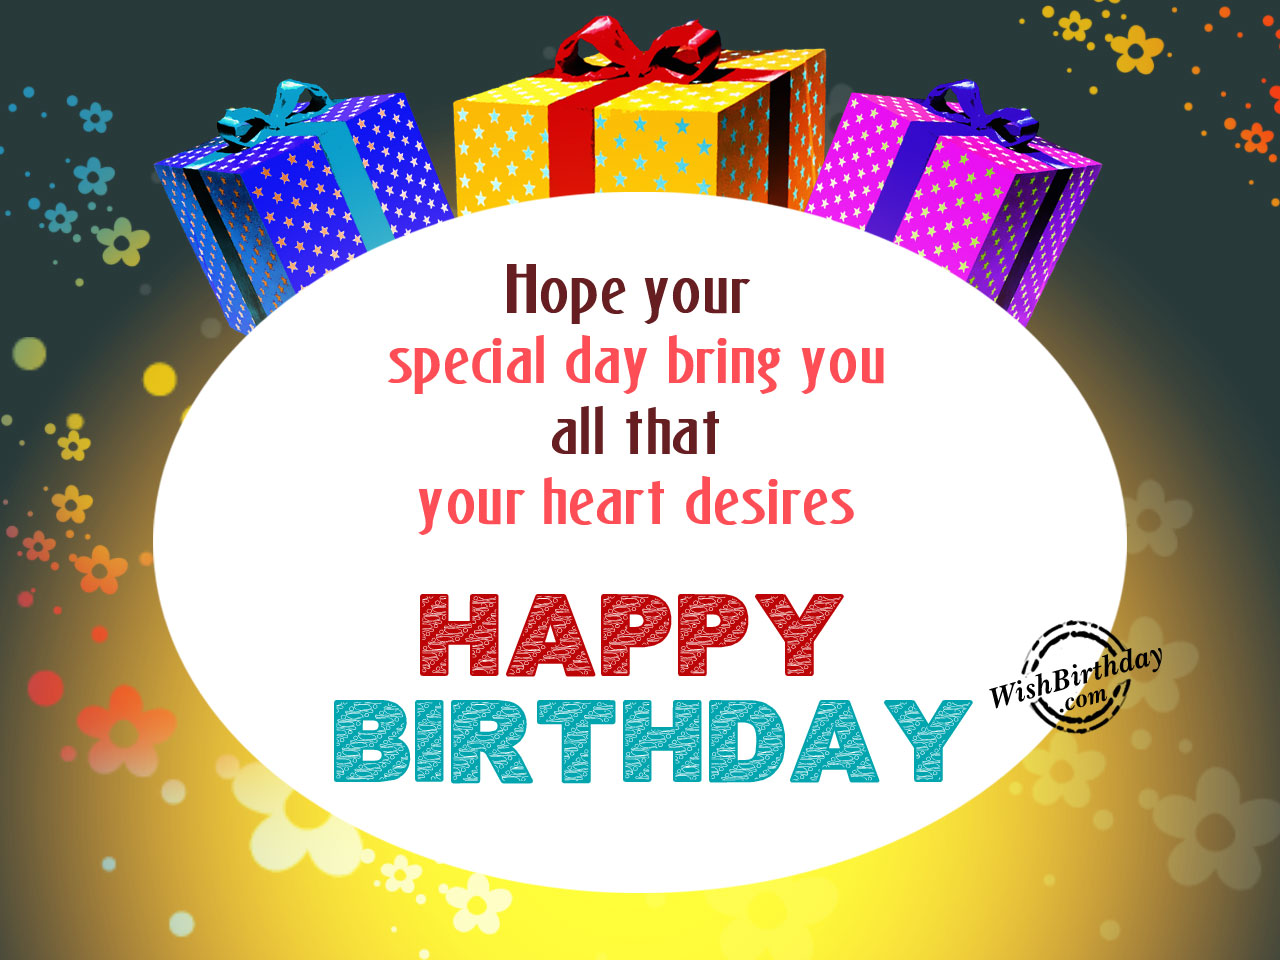 Birthday wishes with gifts birthday images pictures hope your day filled with happinesshappy birthday wb09 m4hsunfo